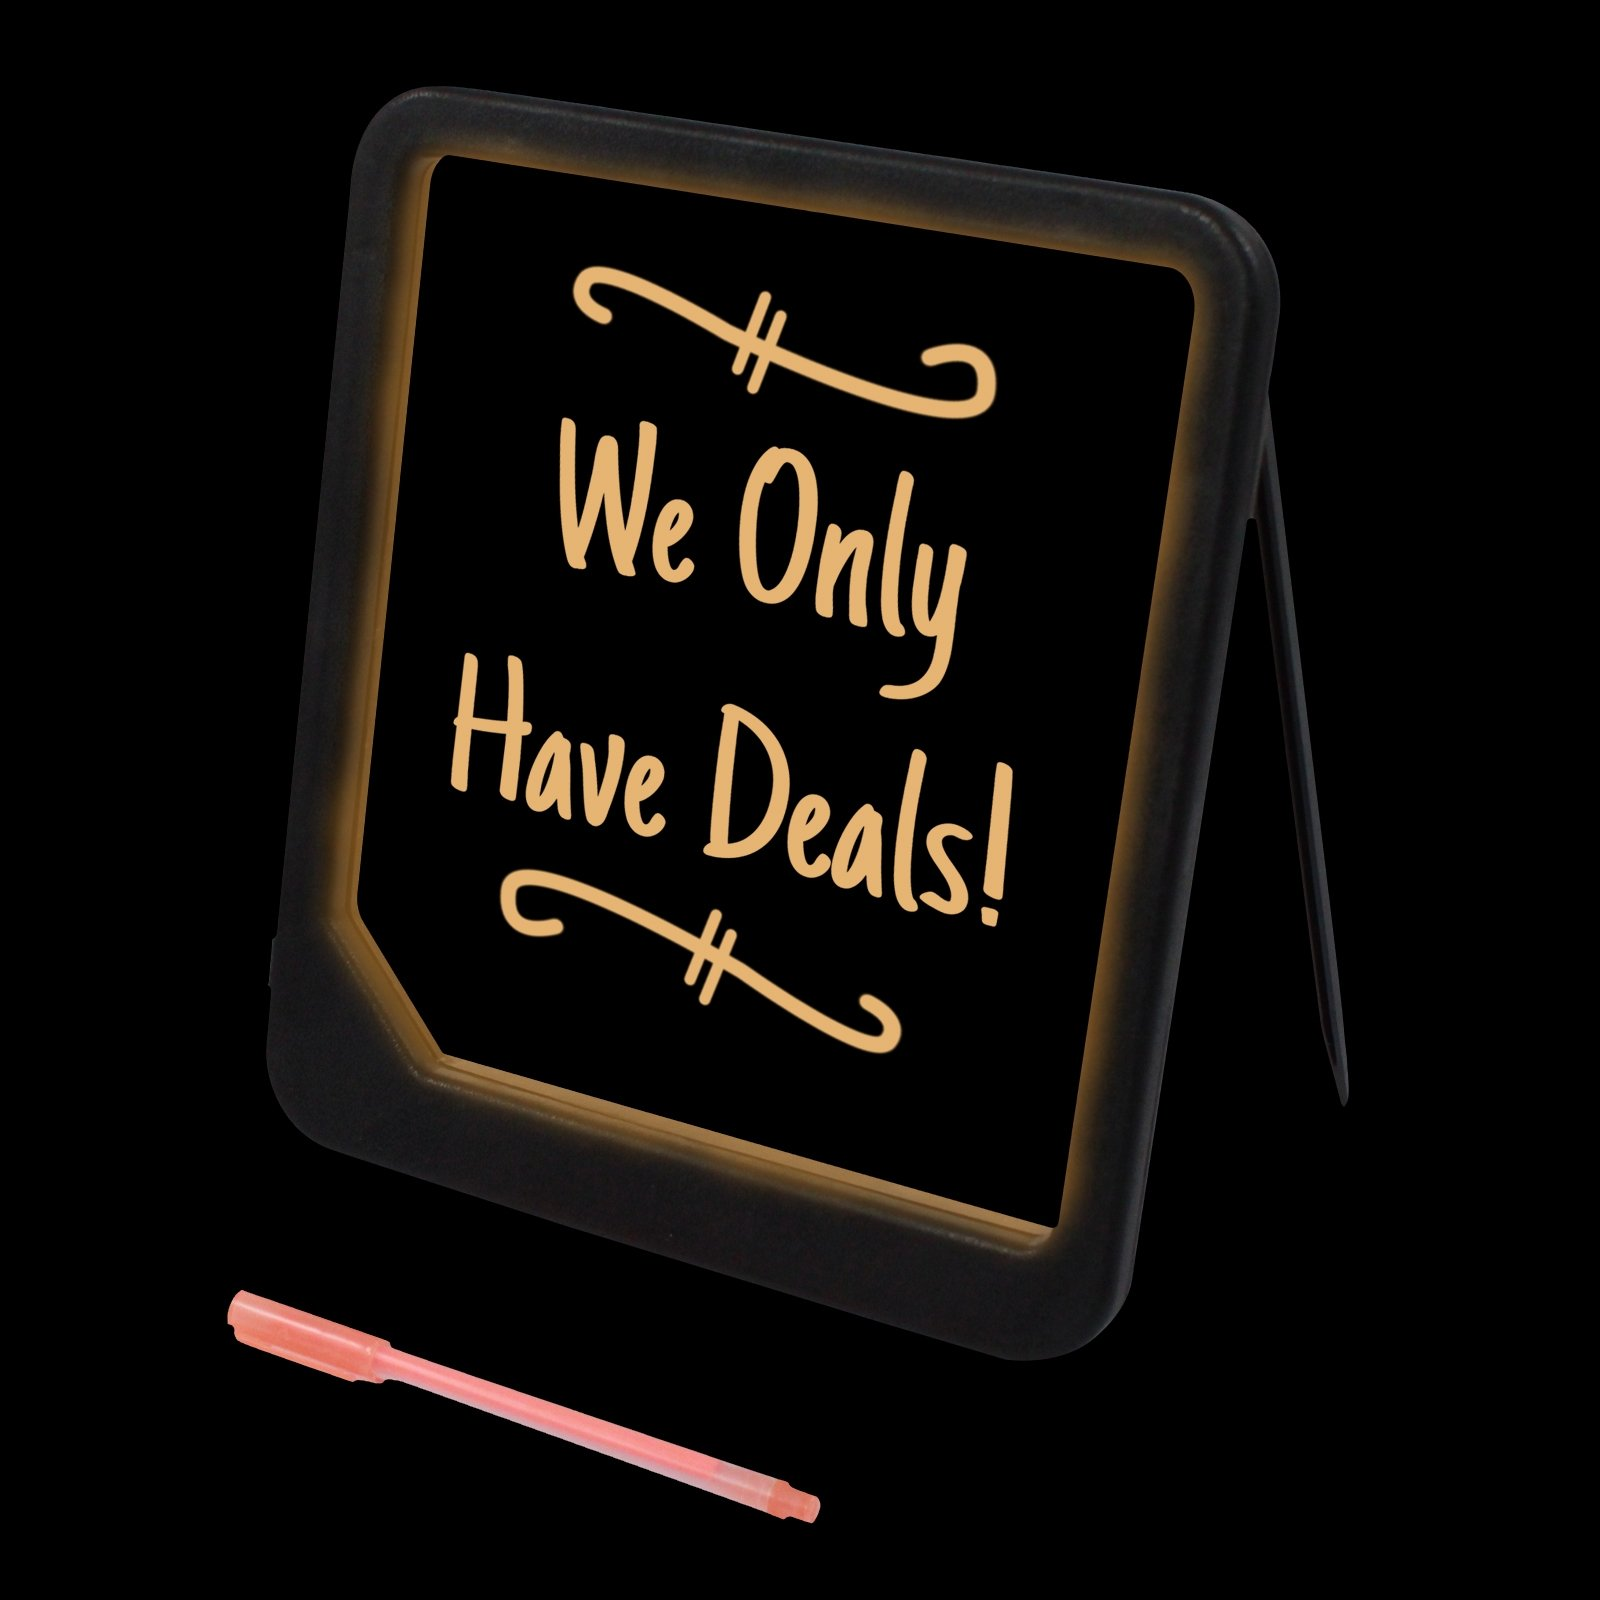 Neon Blackboard Design Ad Board Promotional Sign for Business and Event